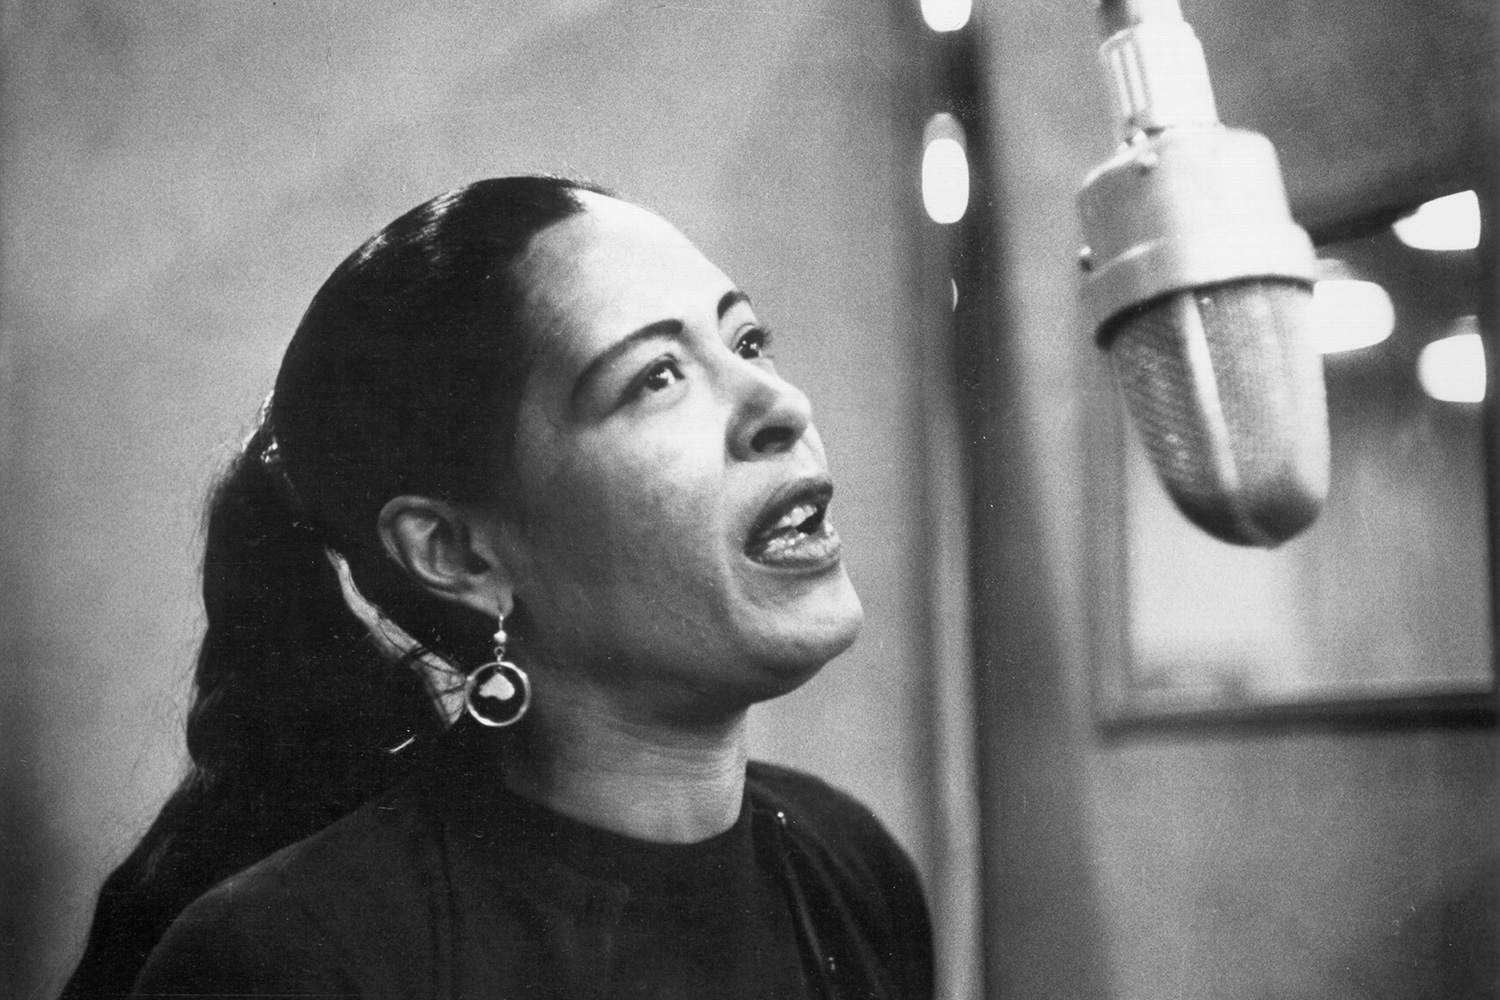 Billie Holiday was a legendary jazz singer, with a career spanning nearly thirty years.